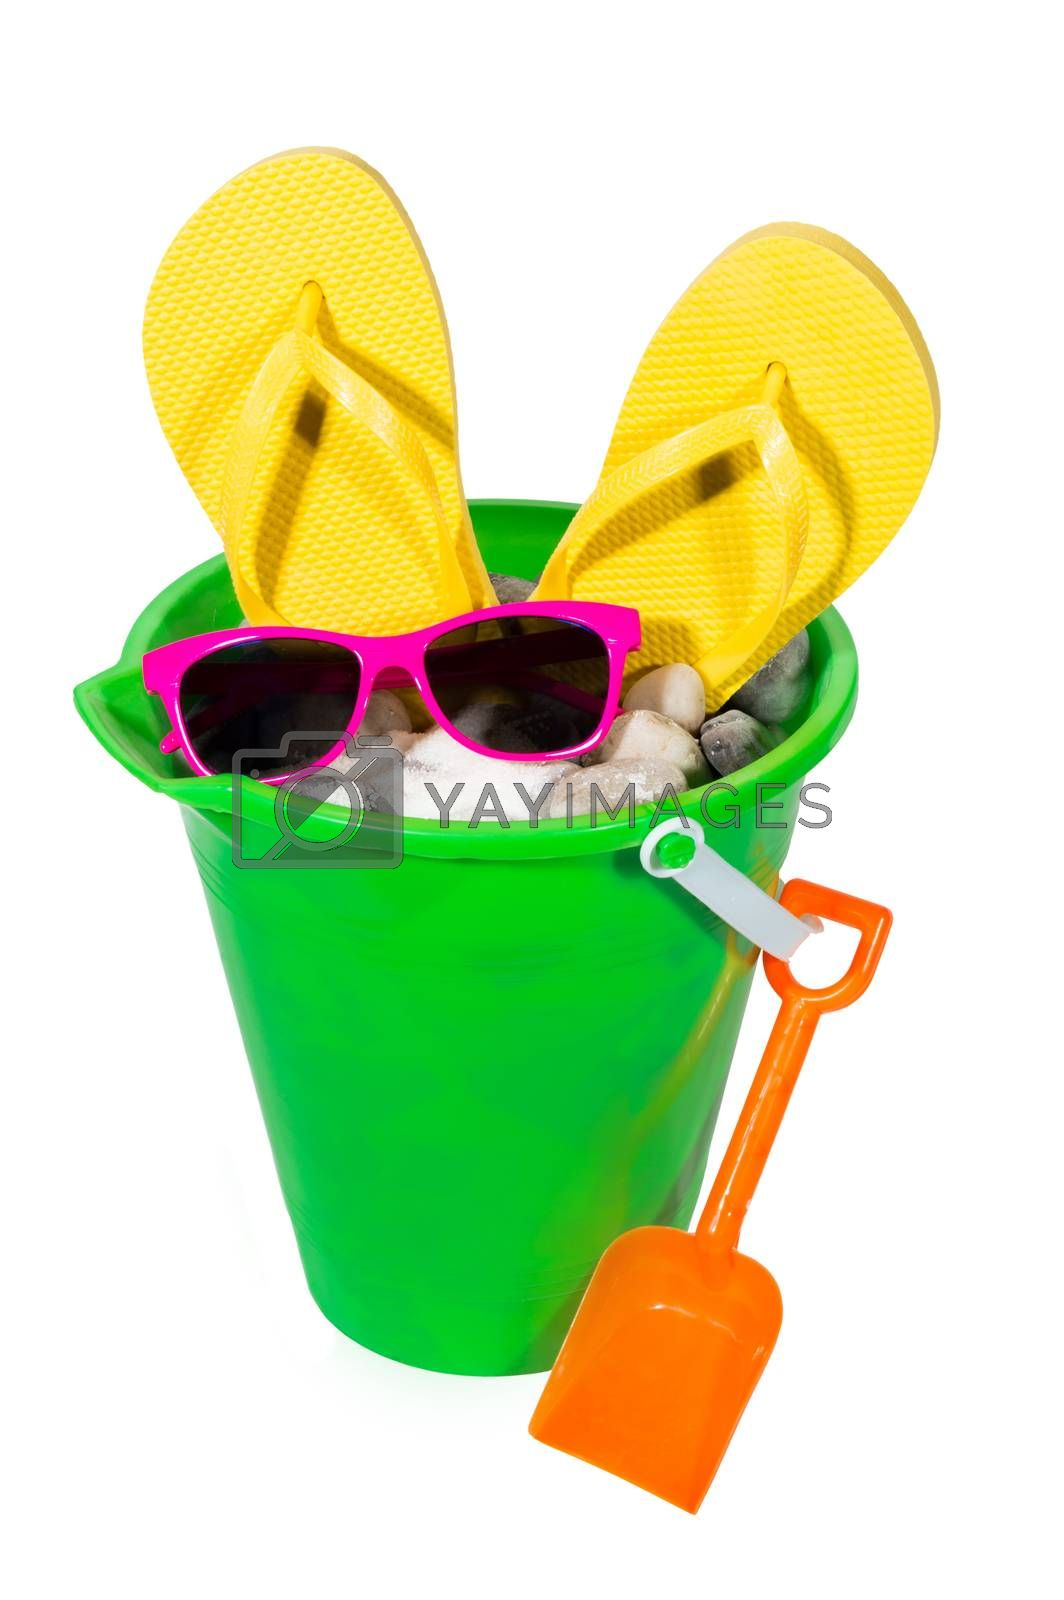 Vertical isolated shot of brightly colored green pail with shovel, yellow flip flops and sunglasses